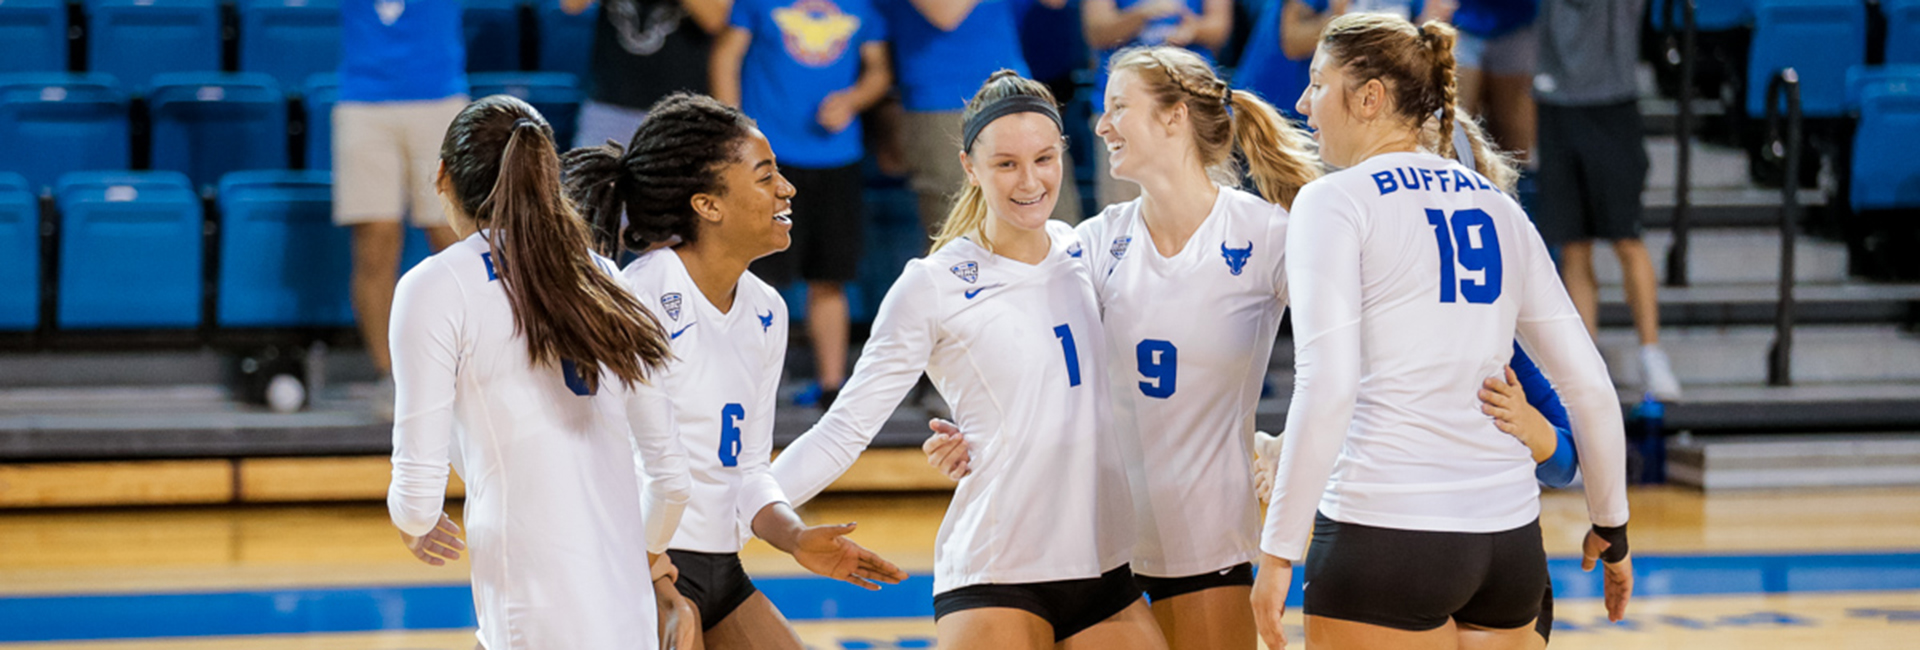 UB Women's Volleyball